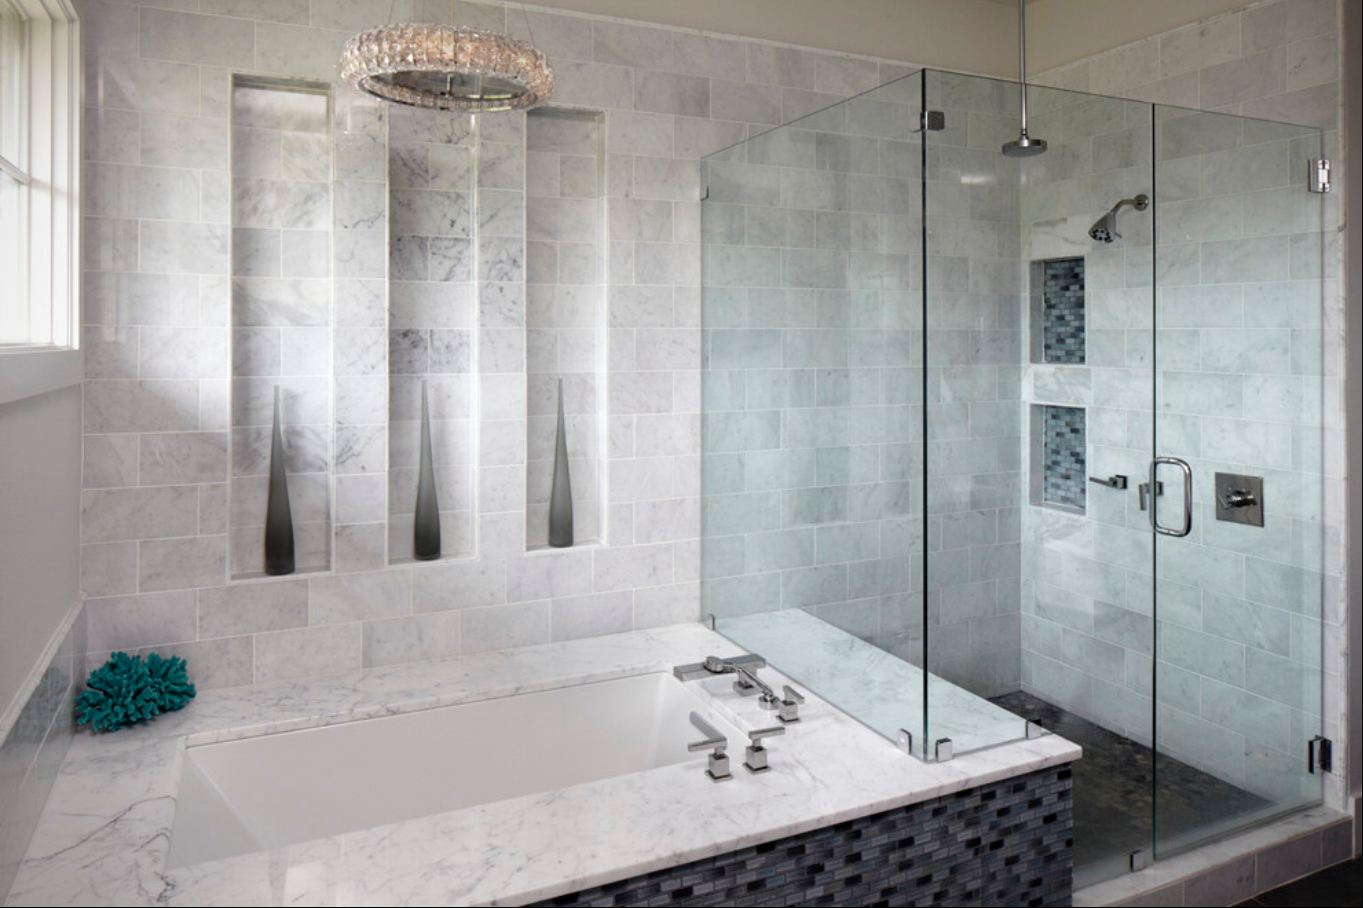 Bathroom designs bath trends westside tile and stone Tile bathroom